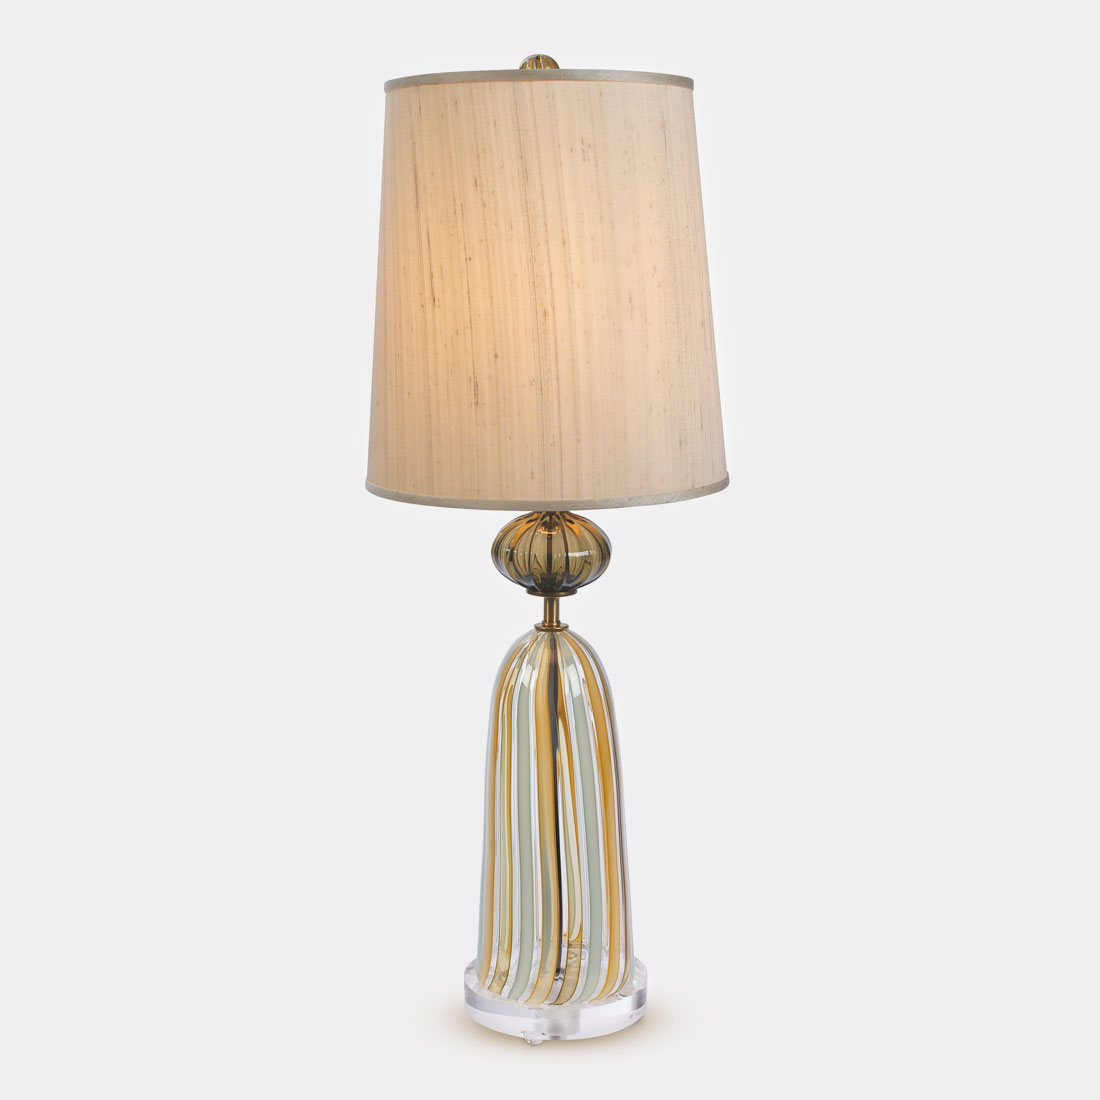 Bell jar table lamp tracy glover studio official website for Glass jar floor lamp